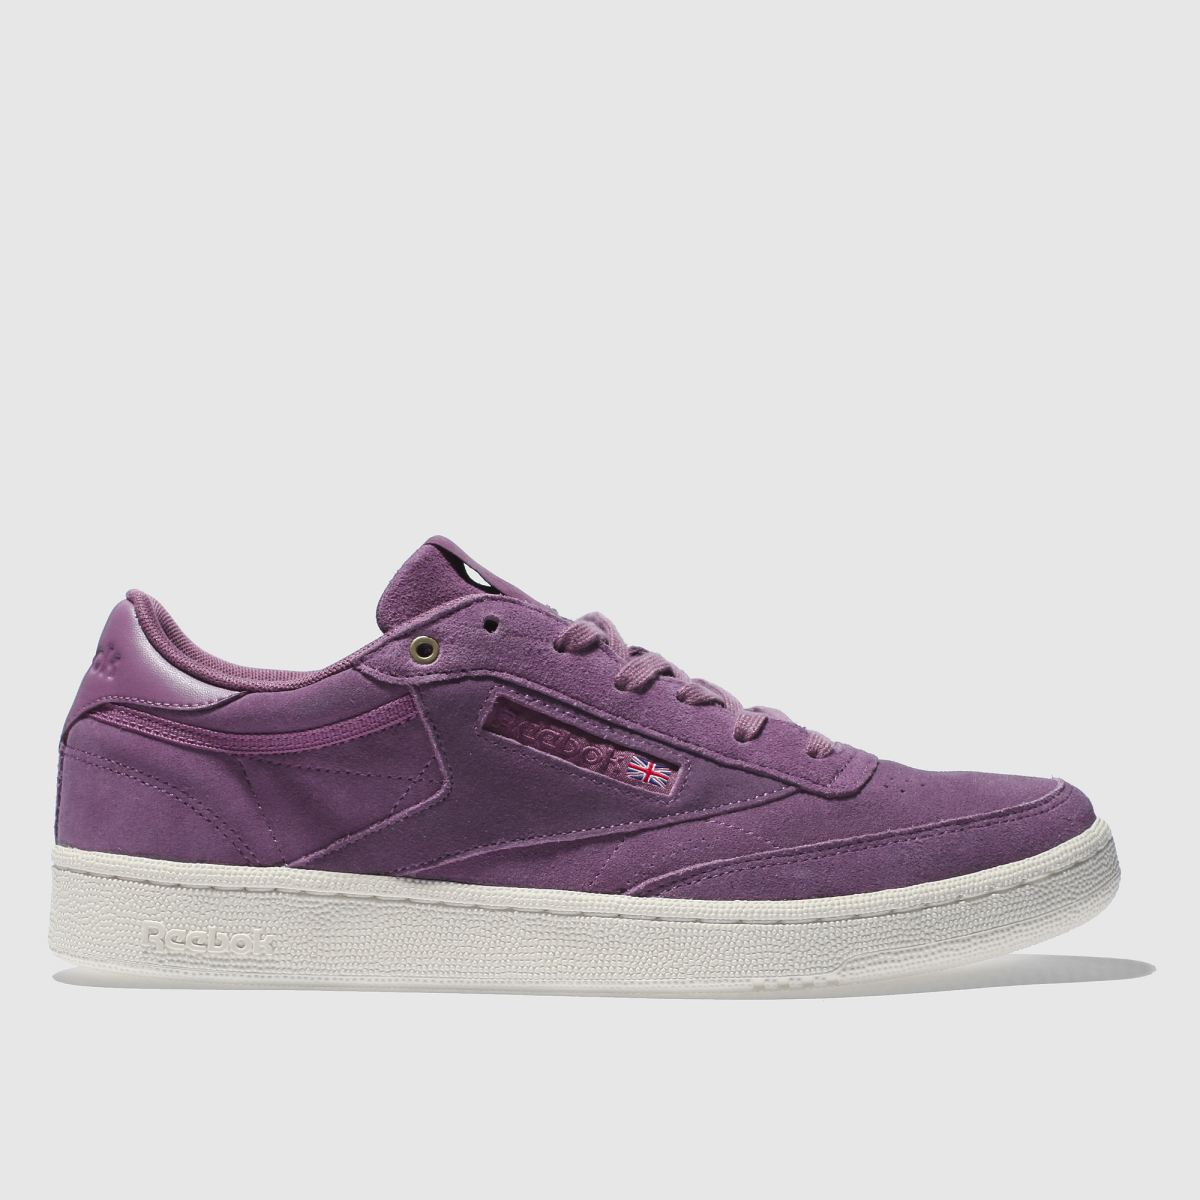 Reebok Purple Club C 85 Mcc Trainers